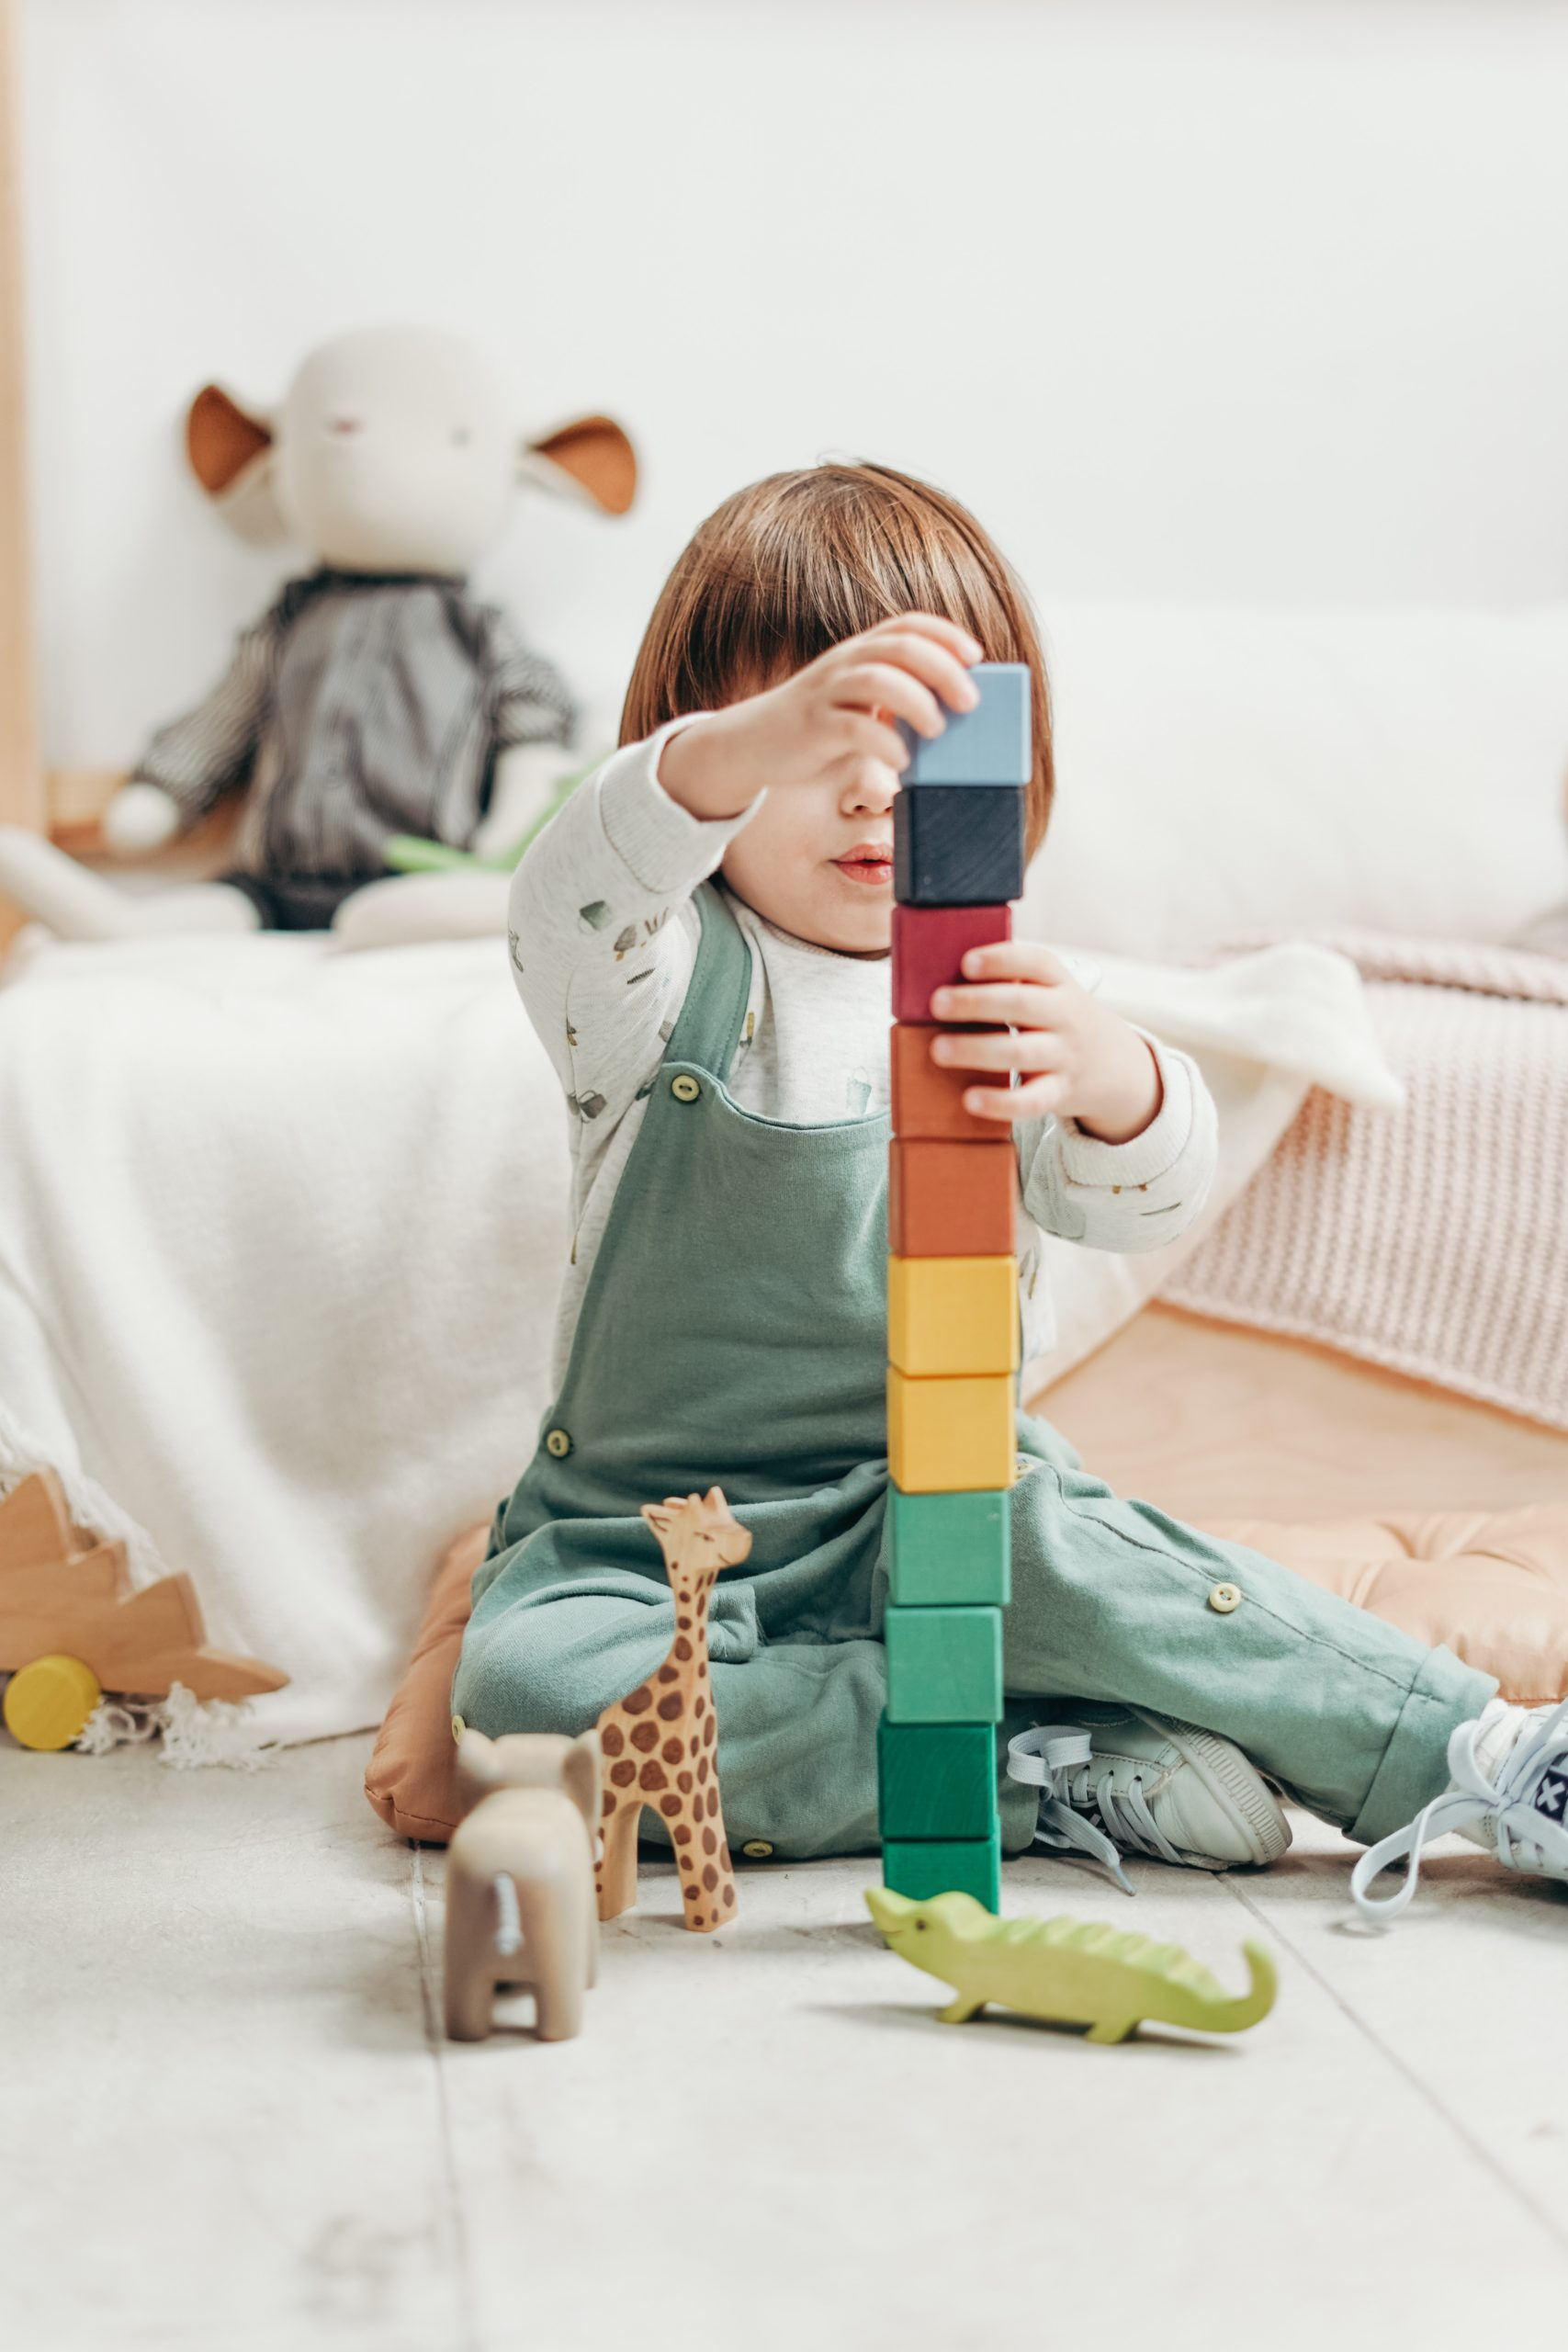 autism: a child wearing dungarees plays with coloured blocks